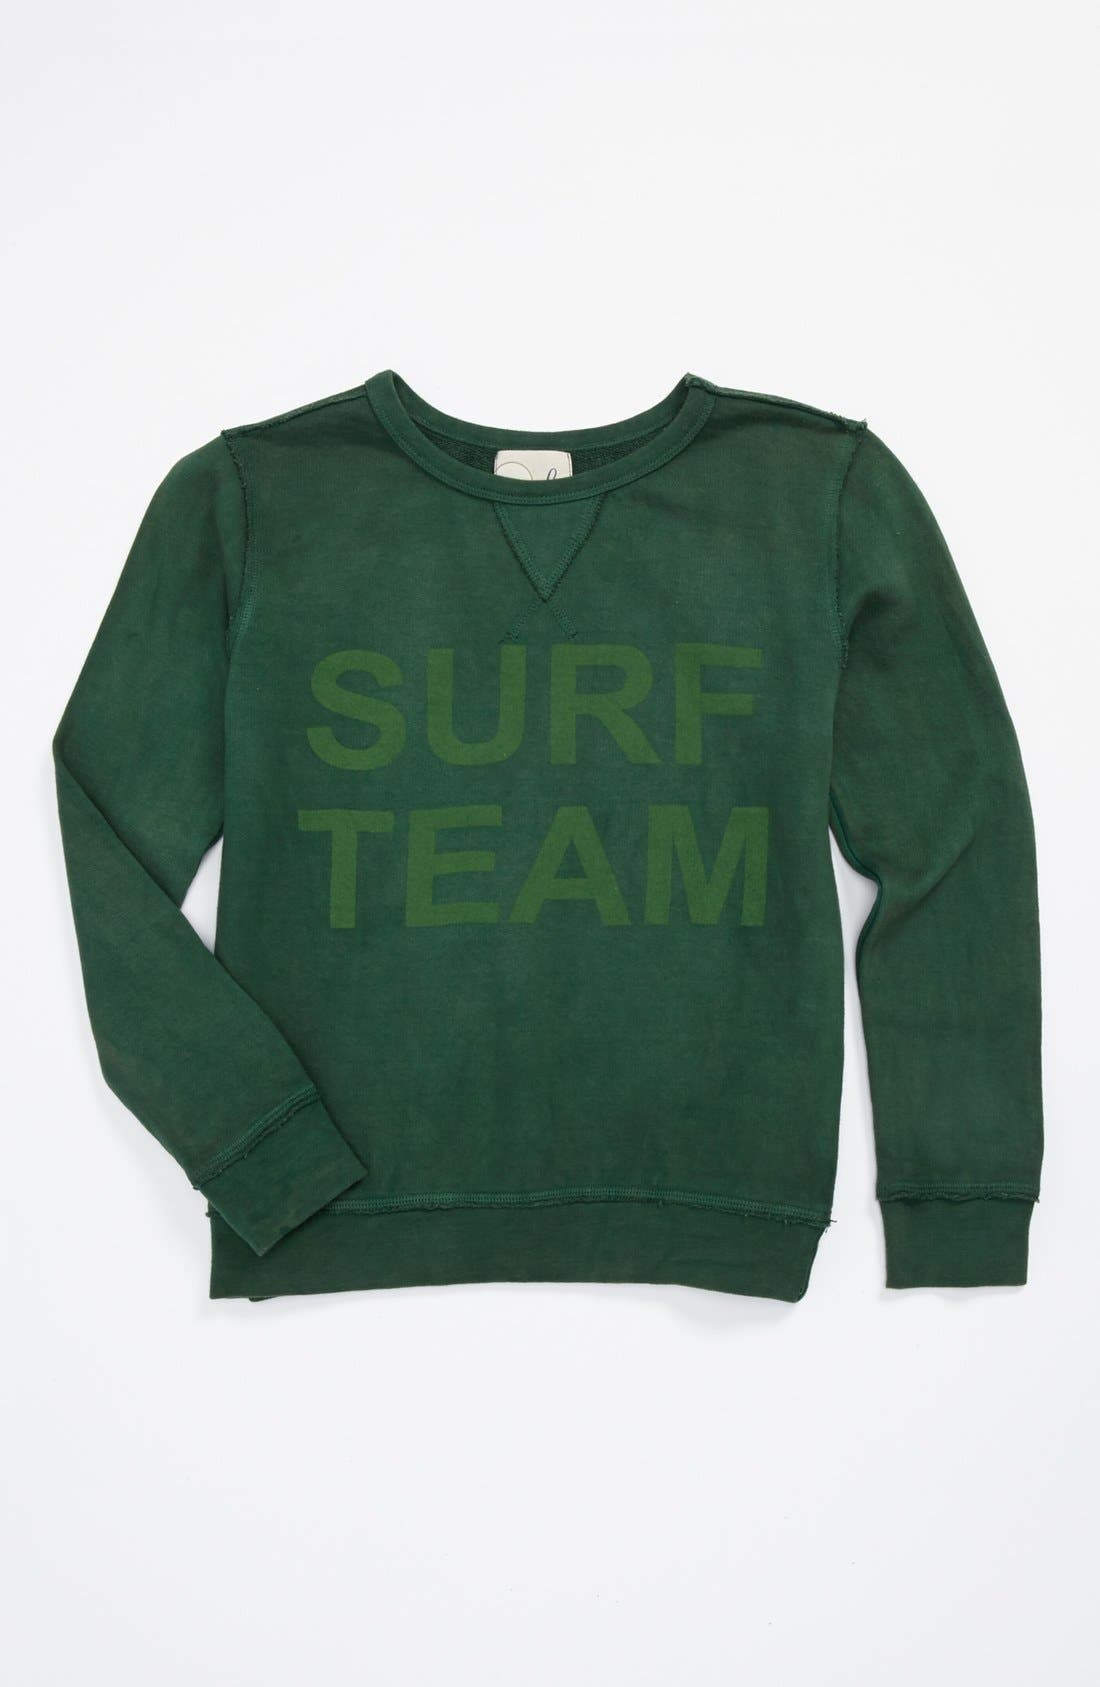 Alternate Image 1 Selected - Peek 'Surf Team' Sweatshirt (Toddler Boys, Little Boys & Big Boys)